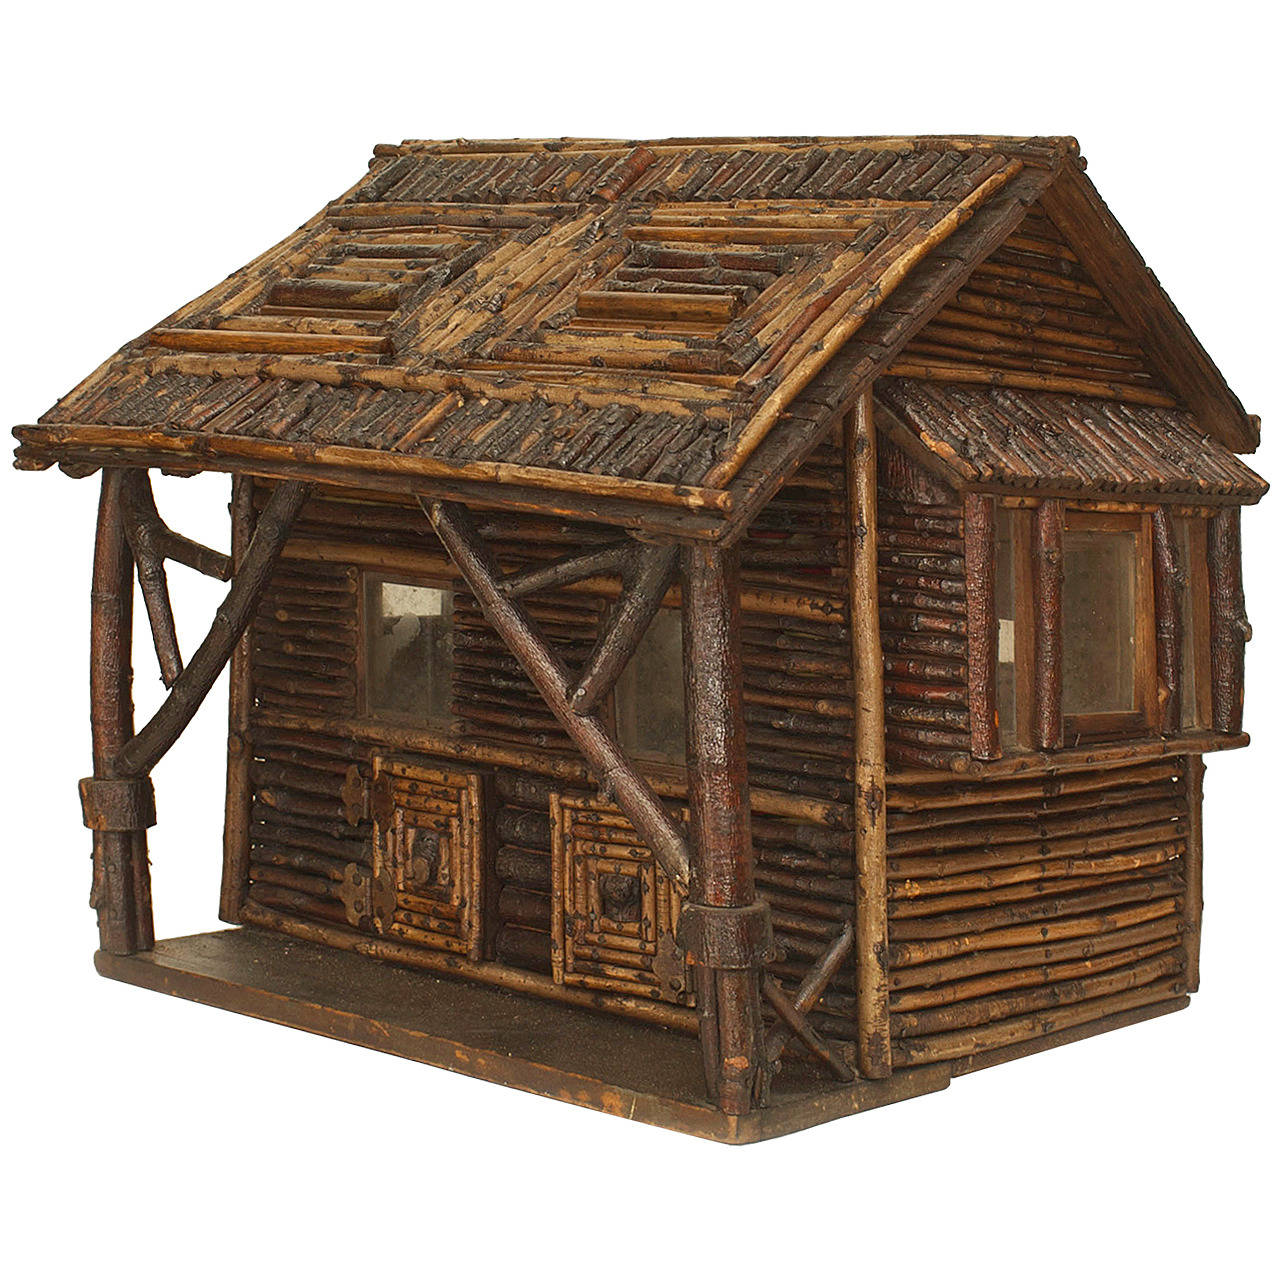 Early 20th c american rustic miniature log cabin for sale for Log cabin art